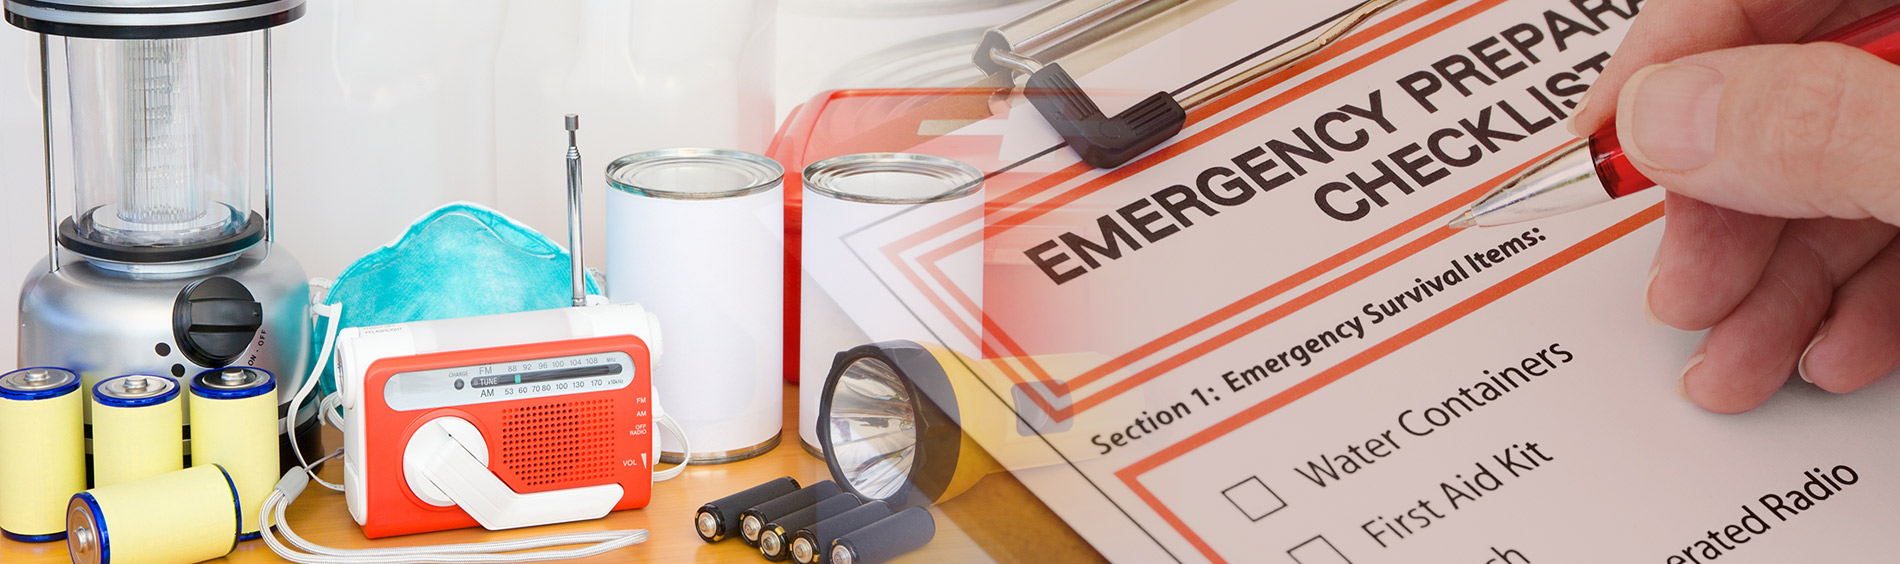 emergency materials and clipboard